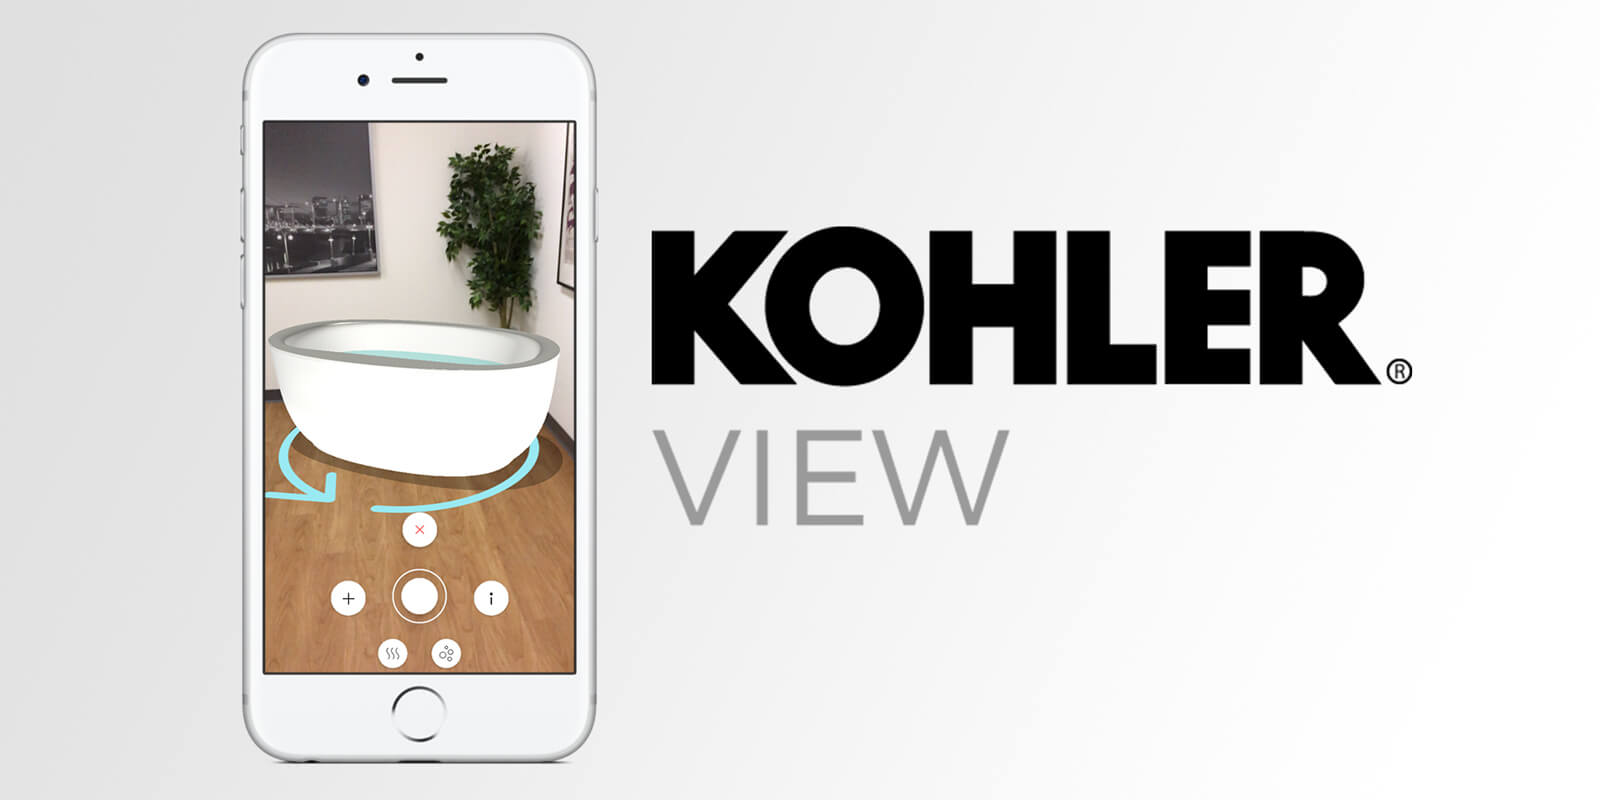 Kohler View AR Product Previews